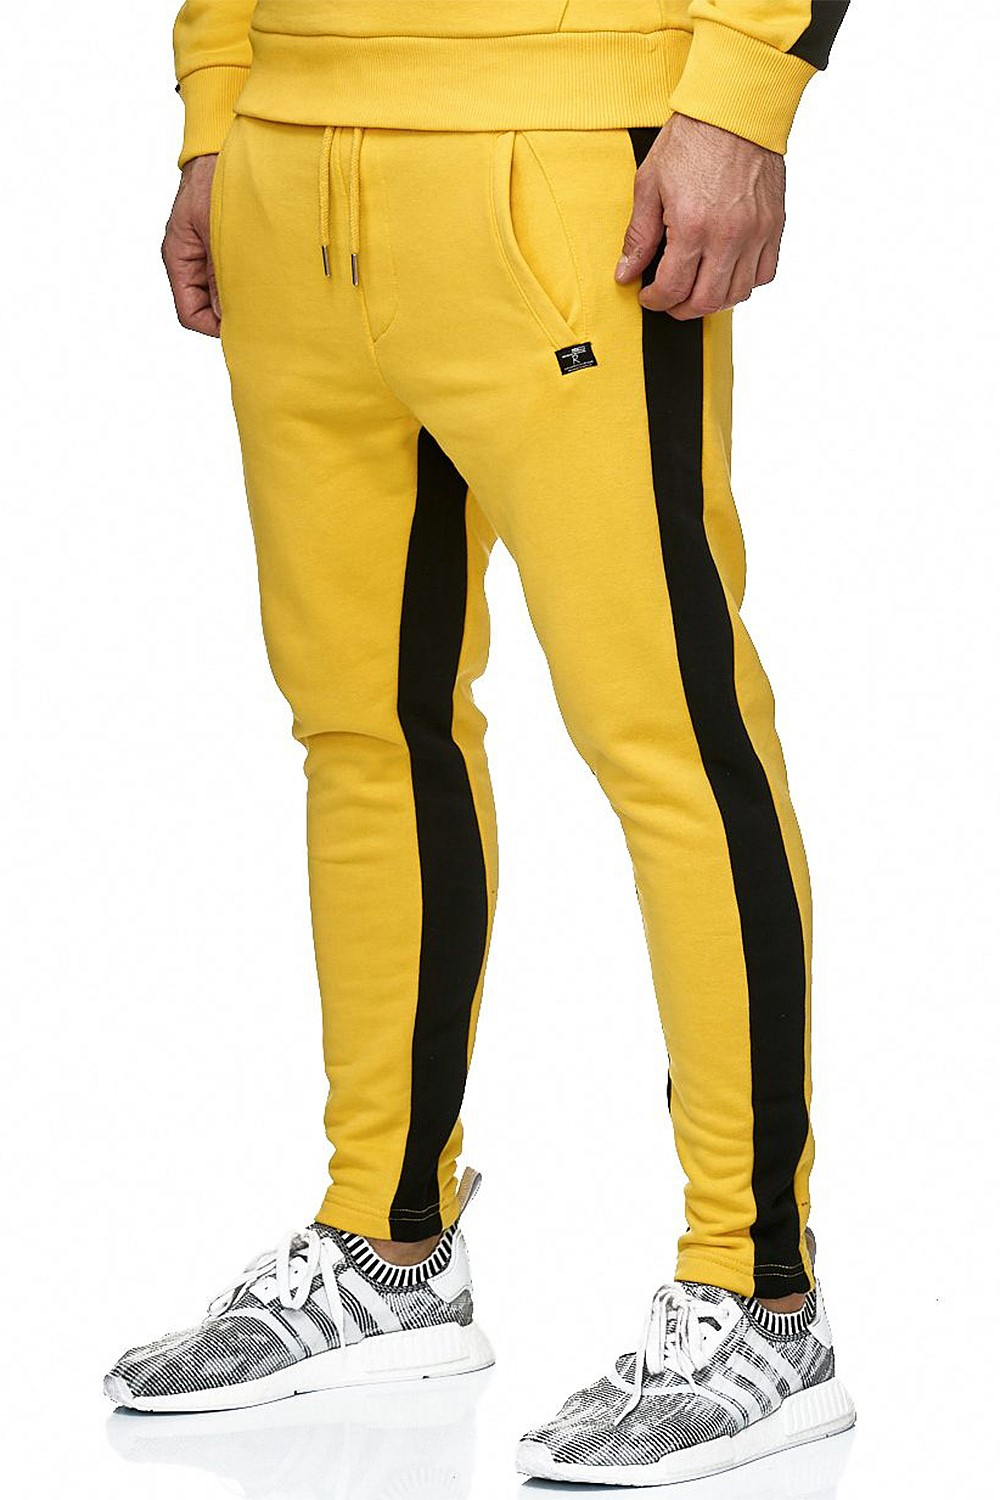 Redbridge-senores-regular-fit-chandal-fitness-sueter-aerobic-pantalones miniatura 18